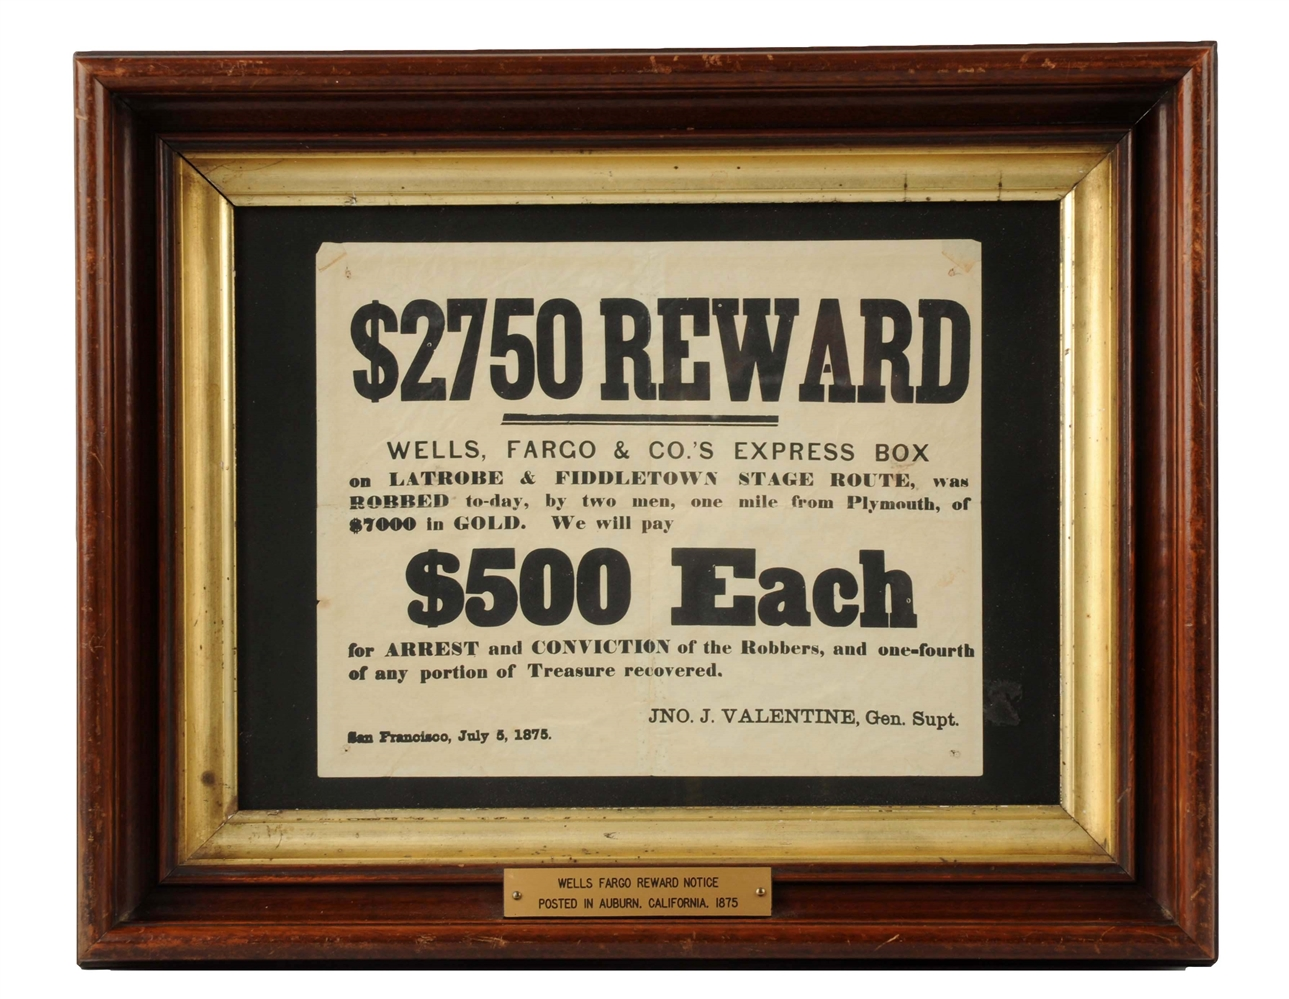 Original Wells Fargo $2750 Reward Poster.